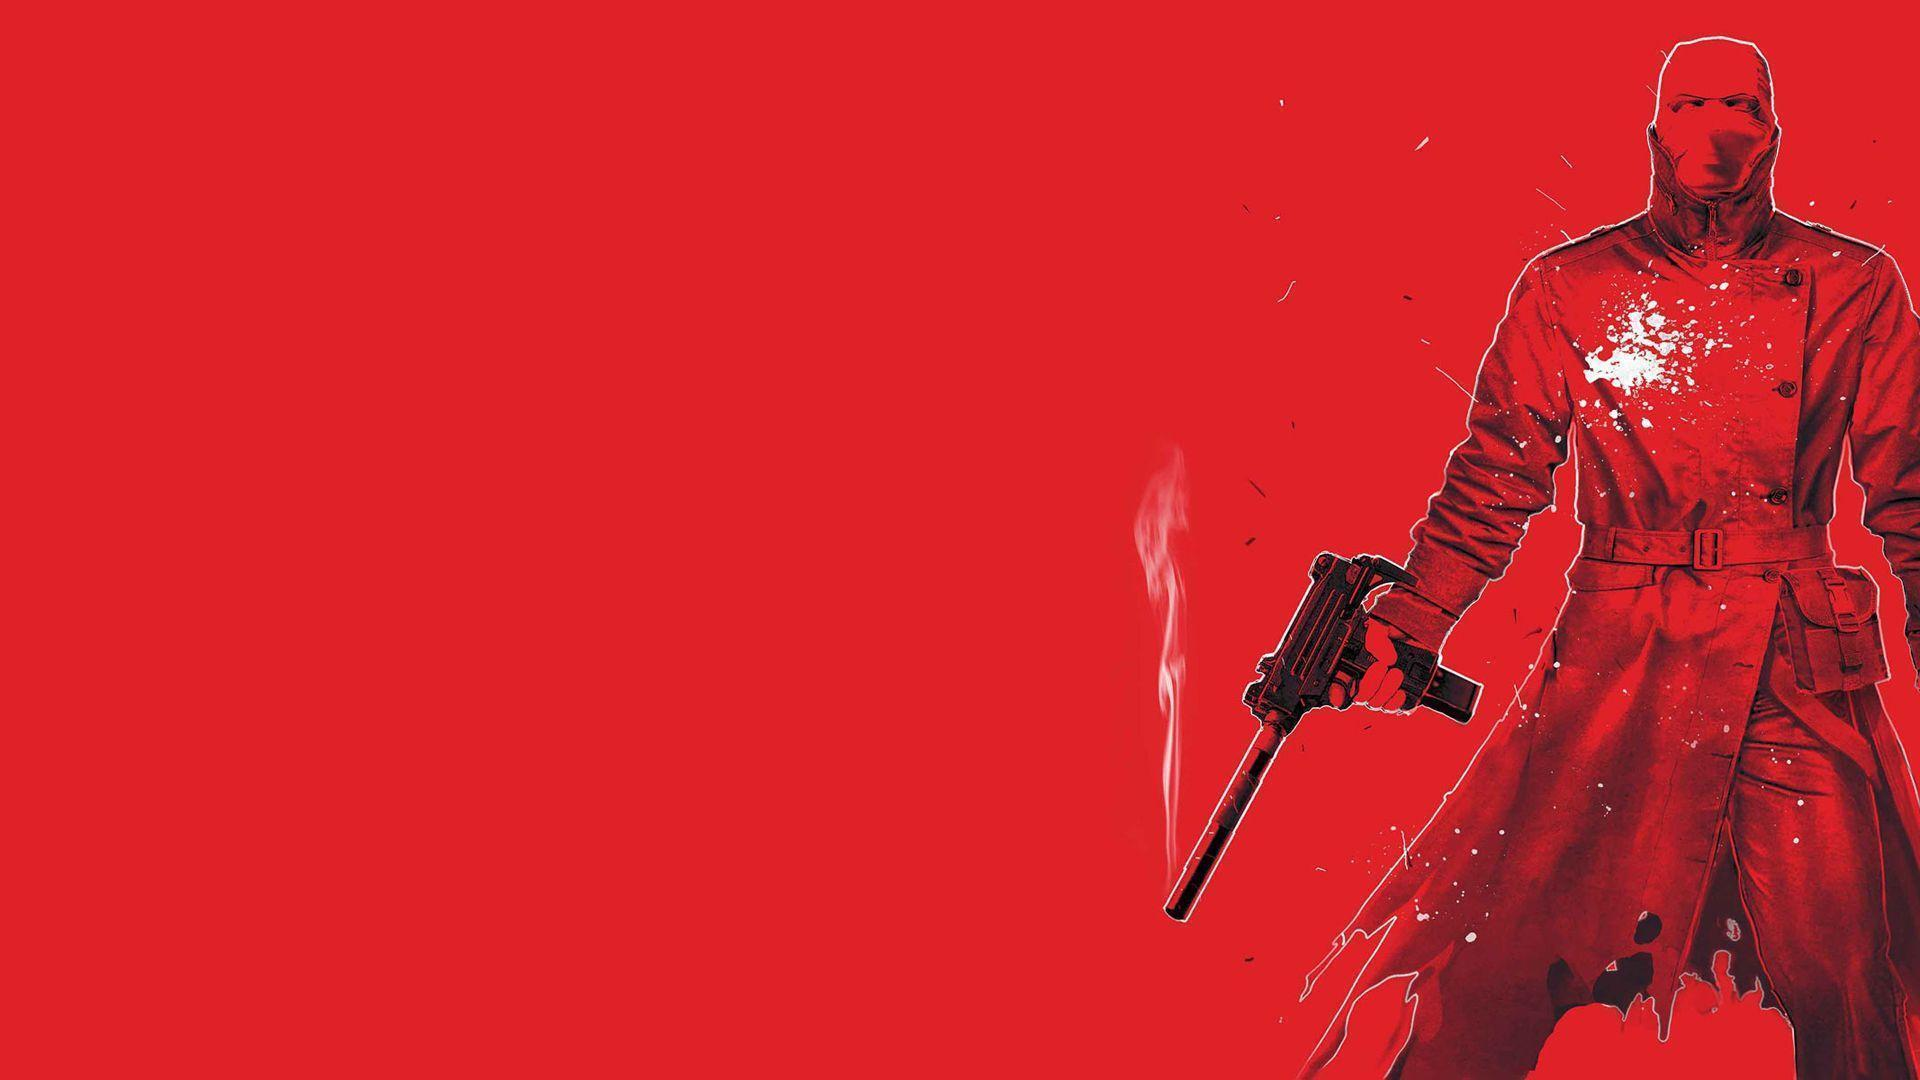 Red hood wallpapers wallpaper cave - Hood cartoon wallpaper ...